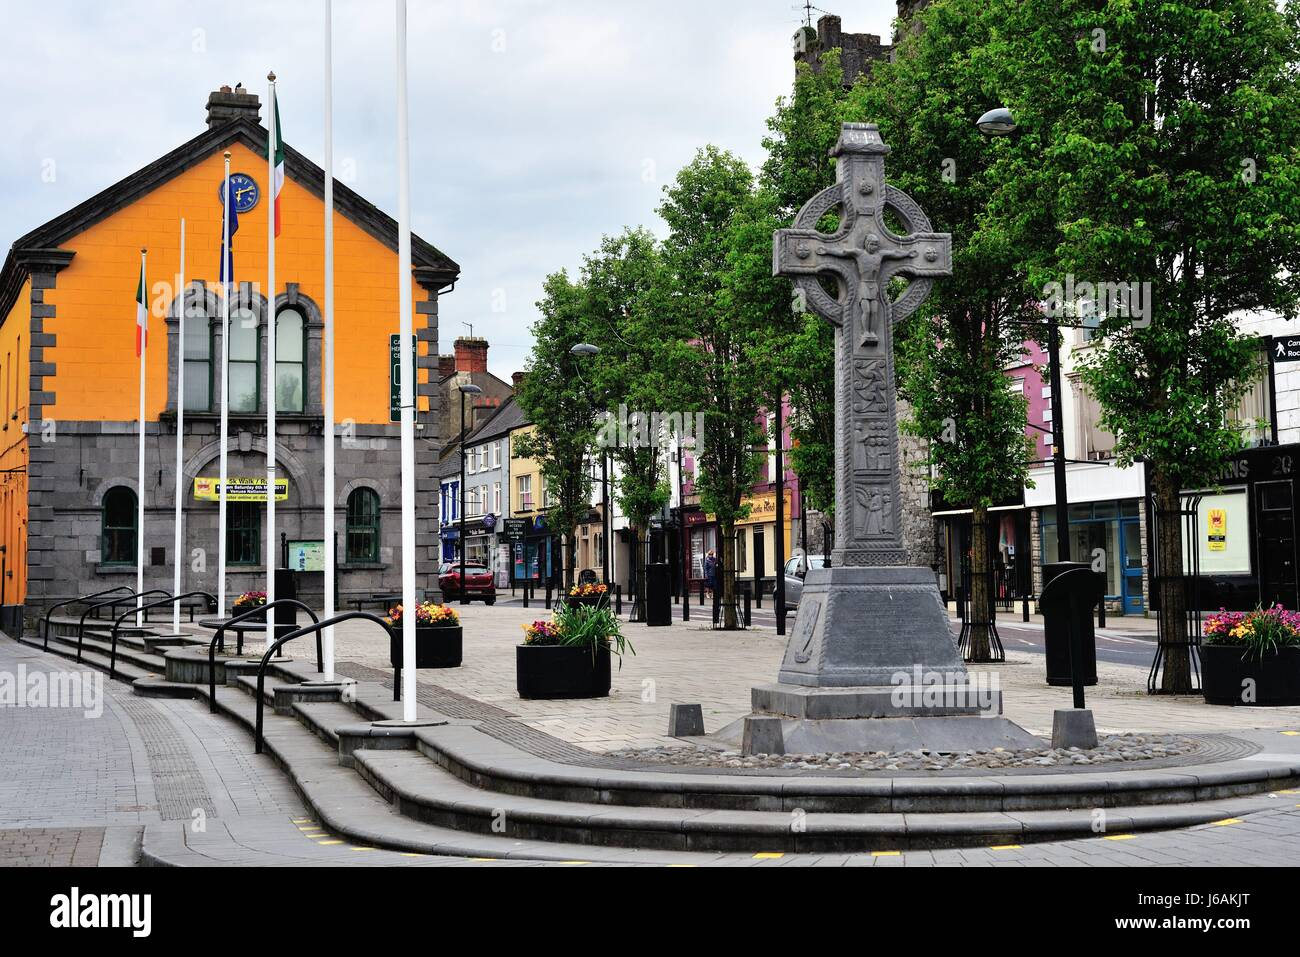 City centre of Cashel, County Tipperary, Ireland. The colorful building in the background is the Cashel Heritage - Stock Image